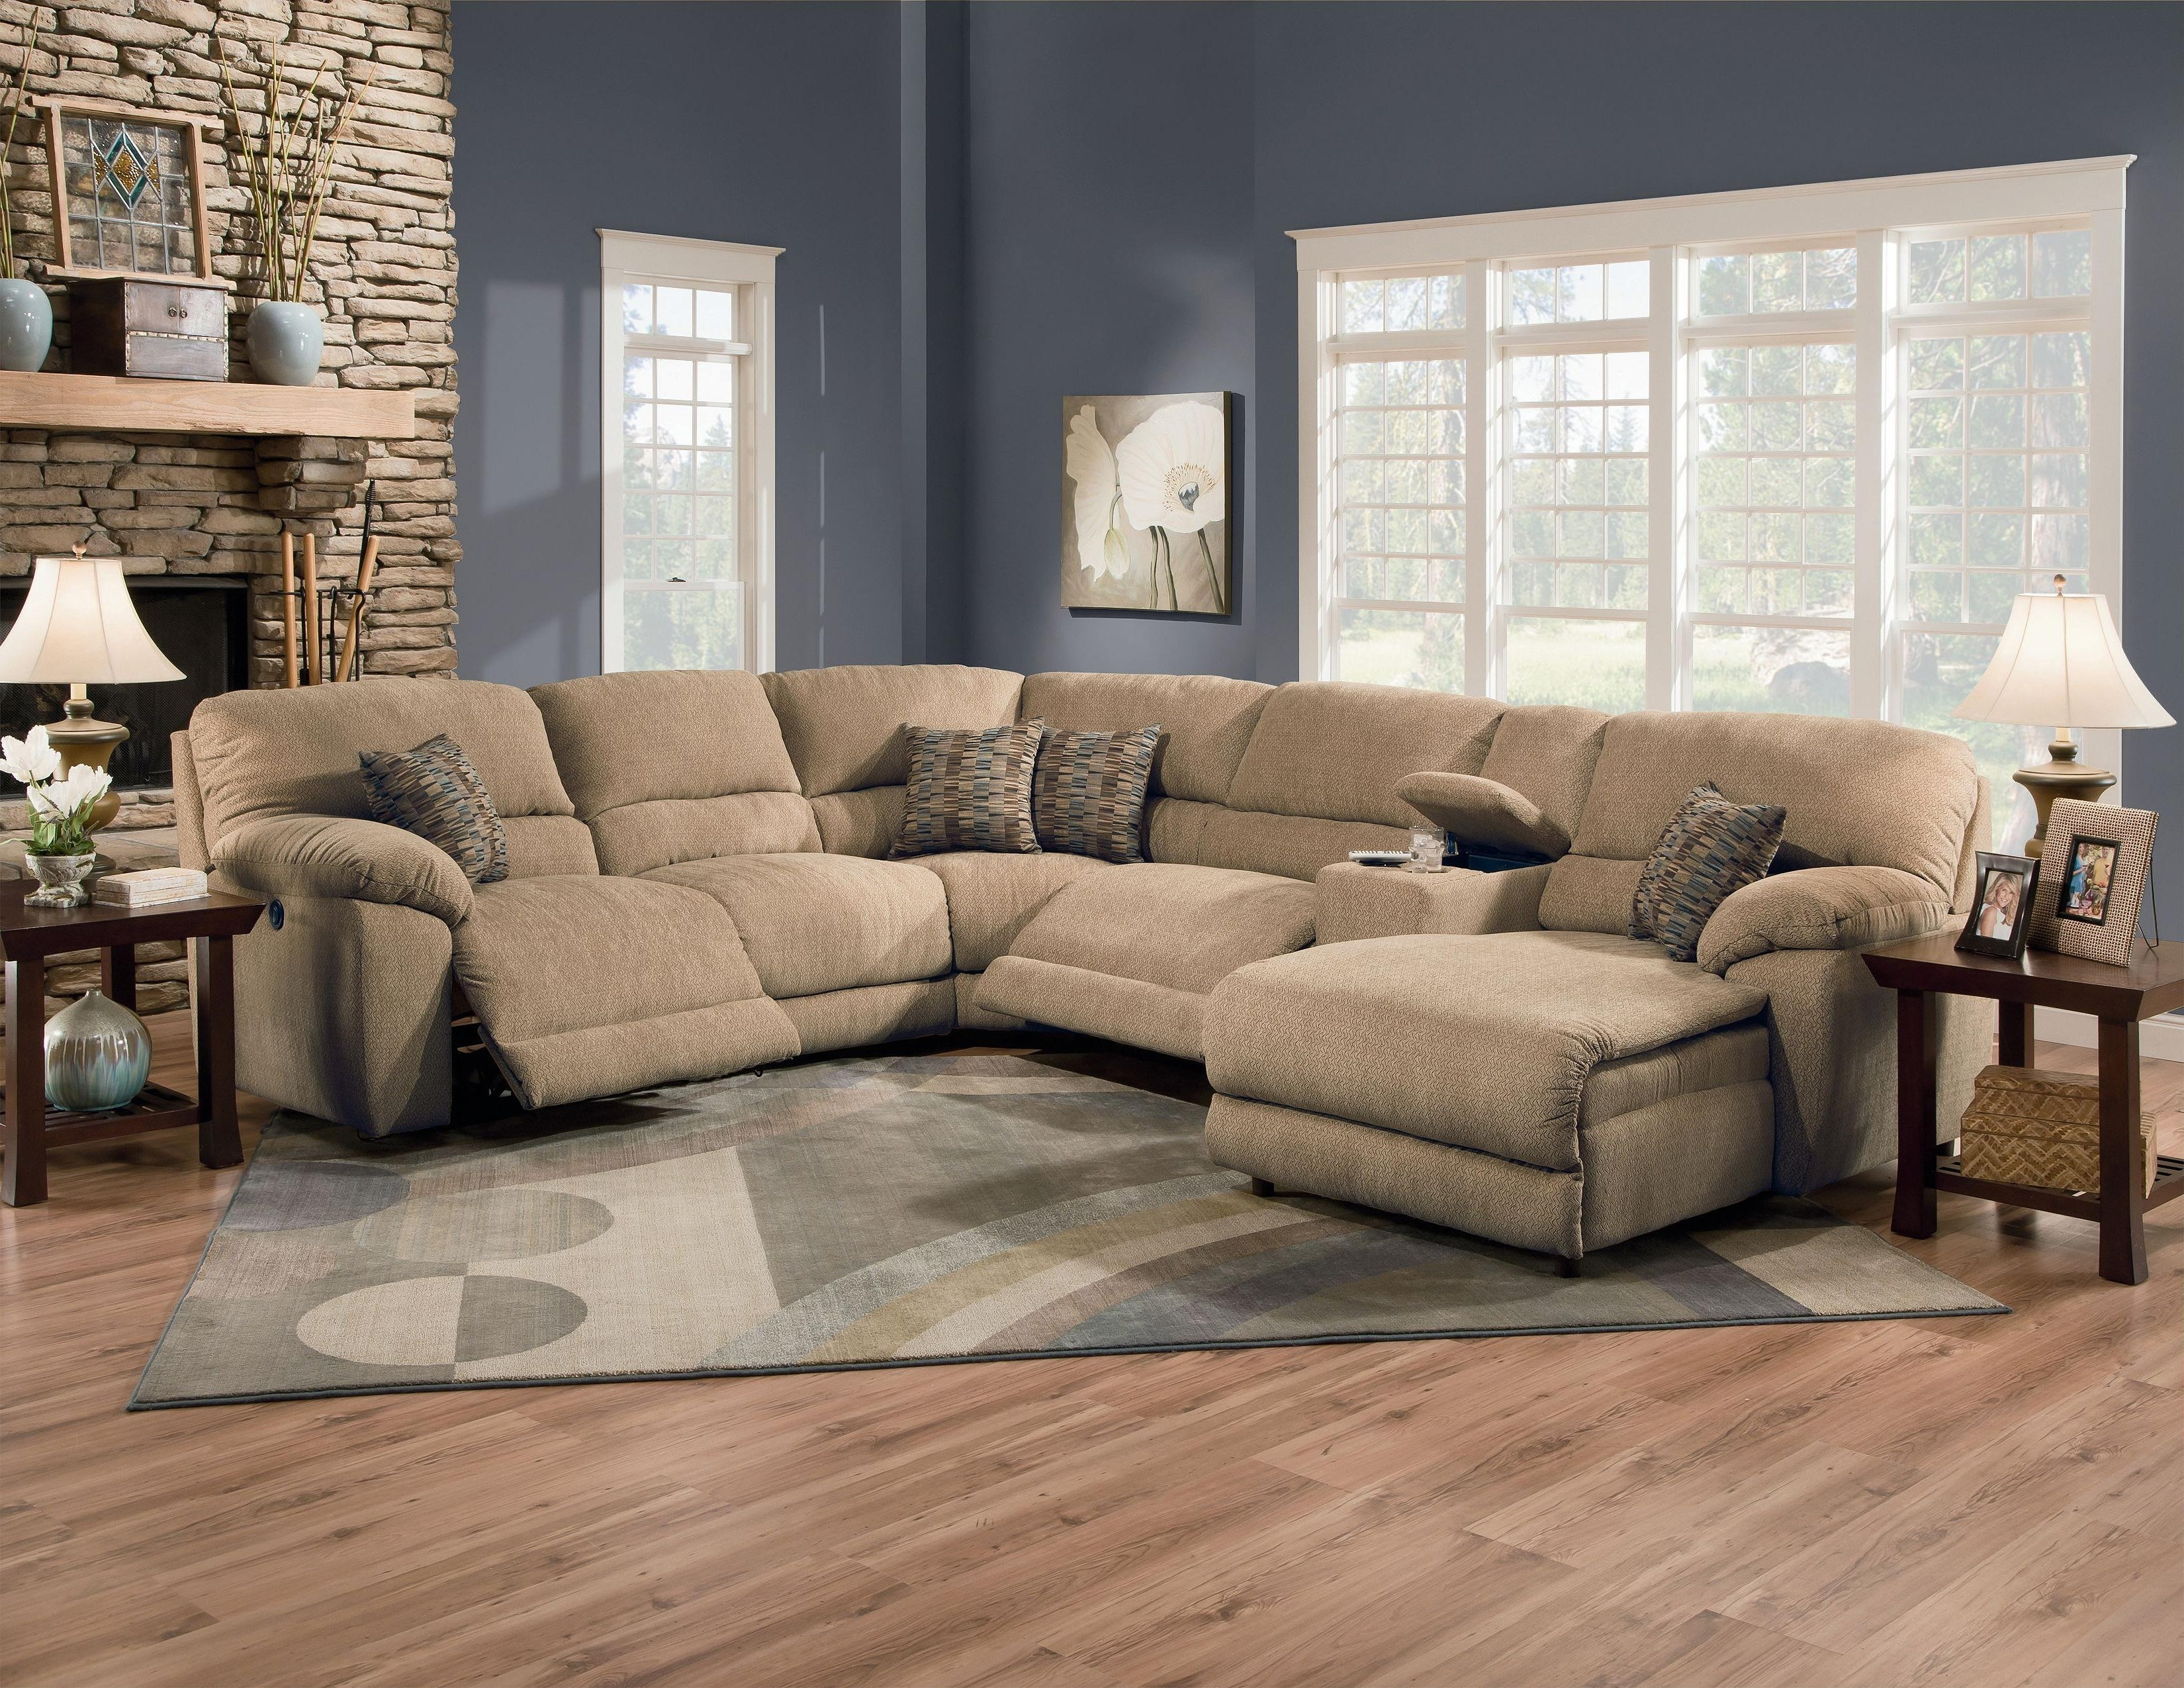 Nashville Sectional Sofas With Trendy Lane Furniture: Rivers Collection Featuring Power Reclining (Gallery 15 of 20)